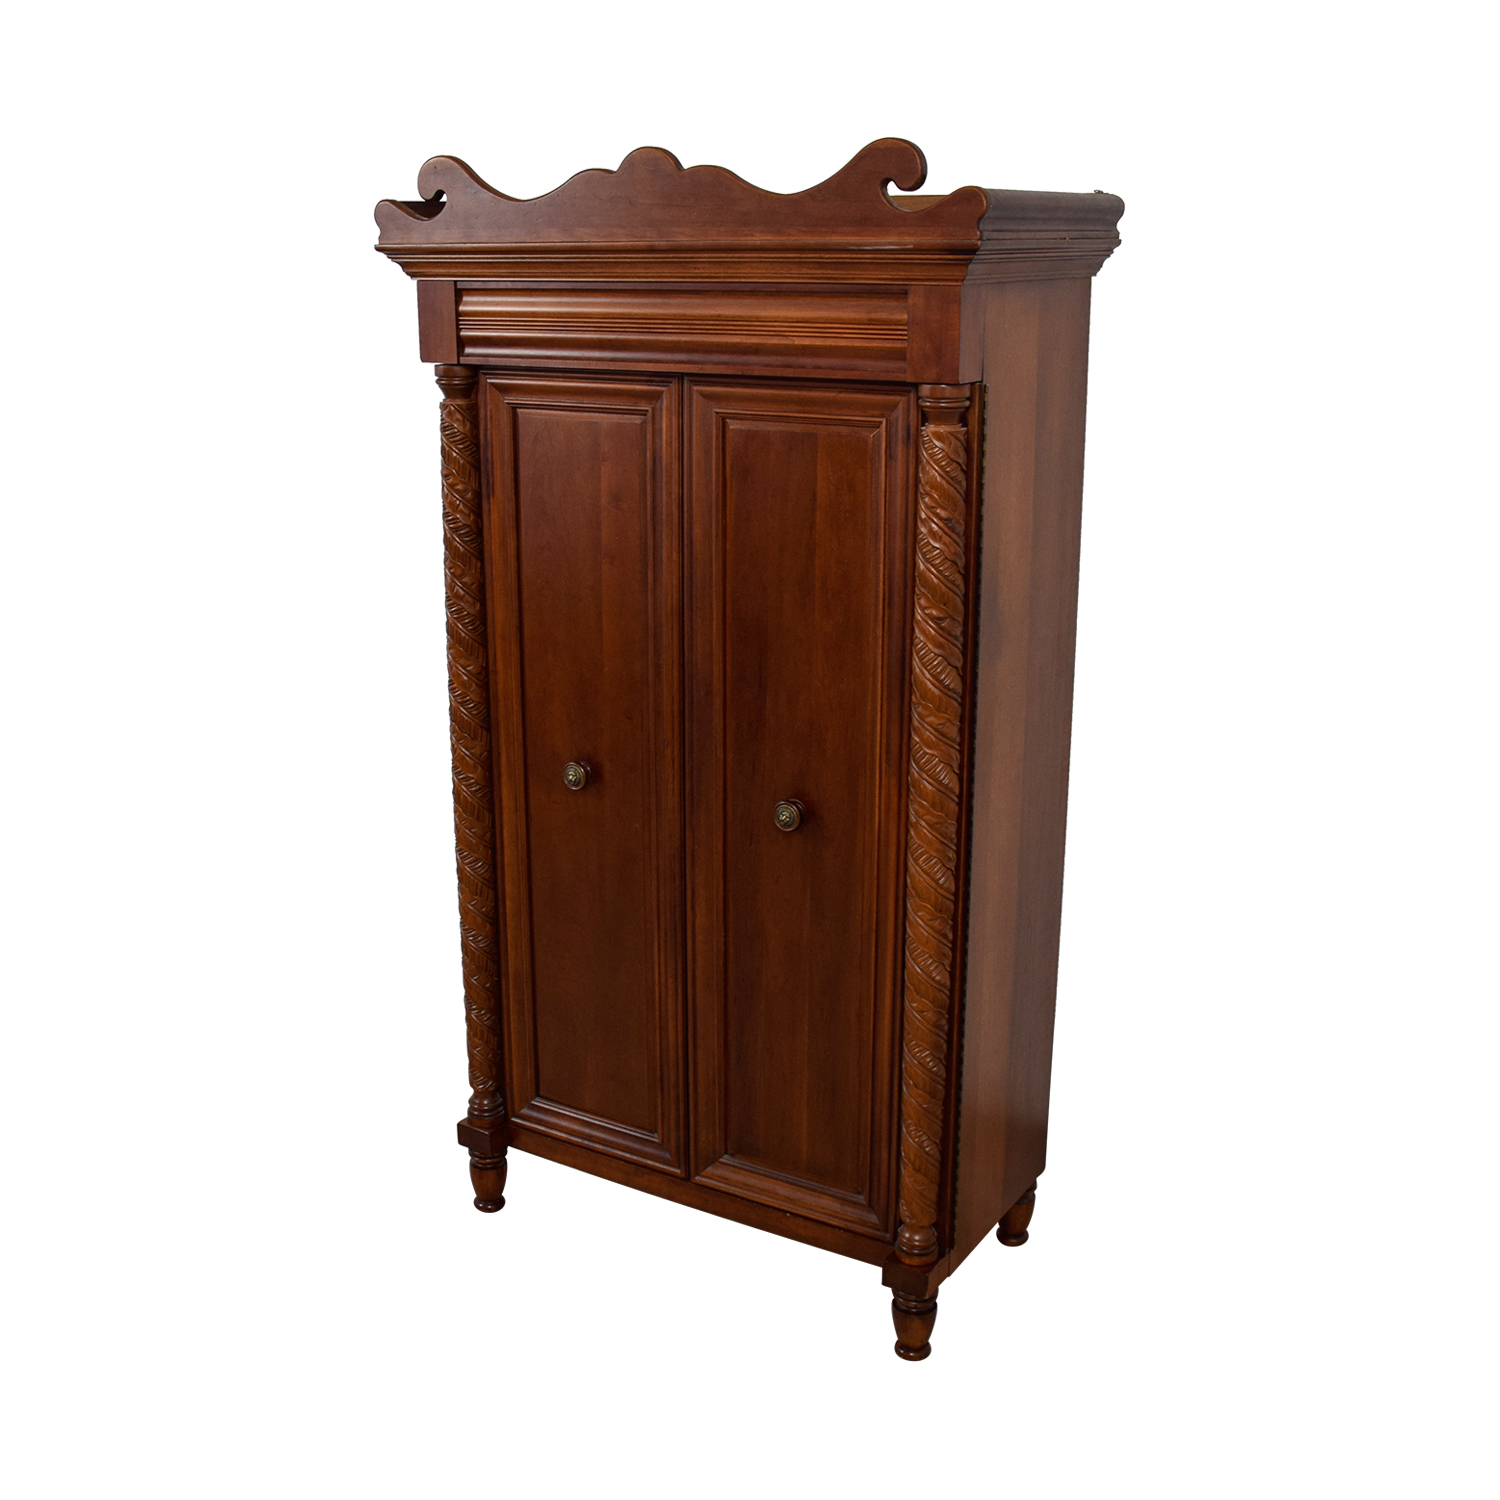 Pulaski Pulaski Croquet Wood Armoire With Wicker Baskets Brown